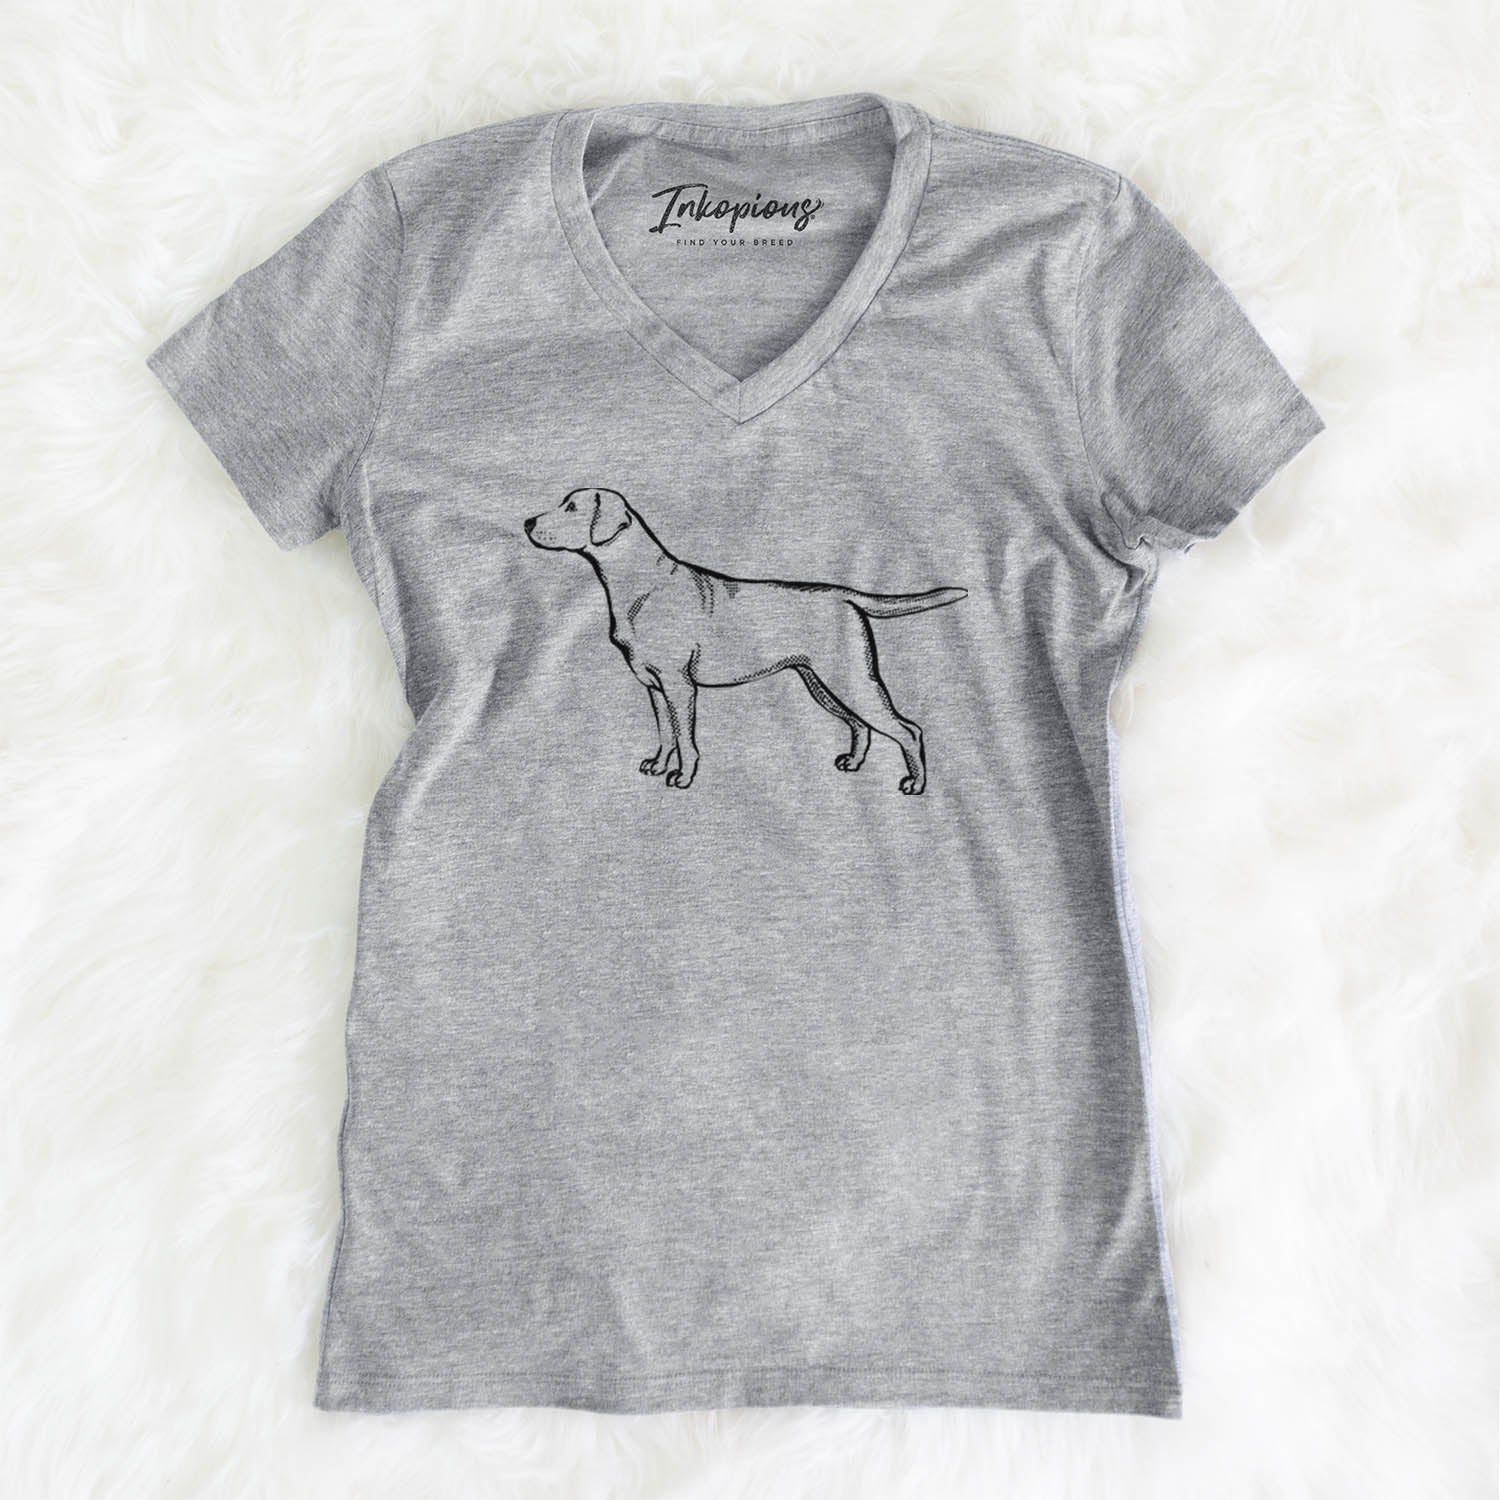 Halftone Yellow Labrador Retriever  - Women's Modern Fit V-neck Shirt